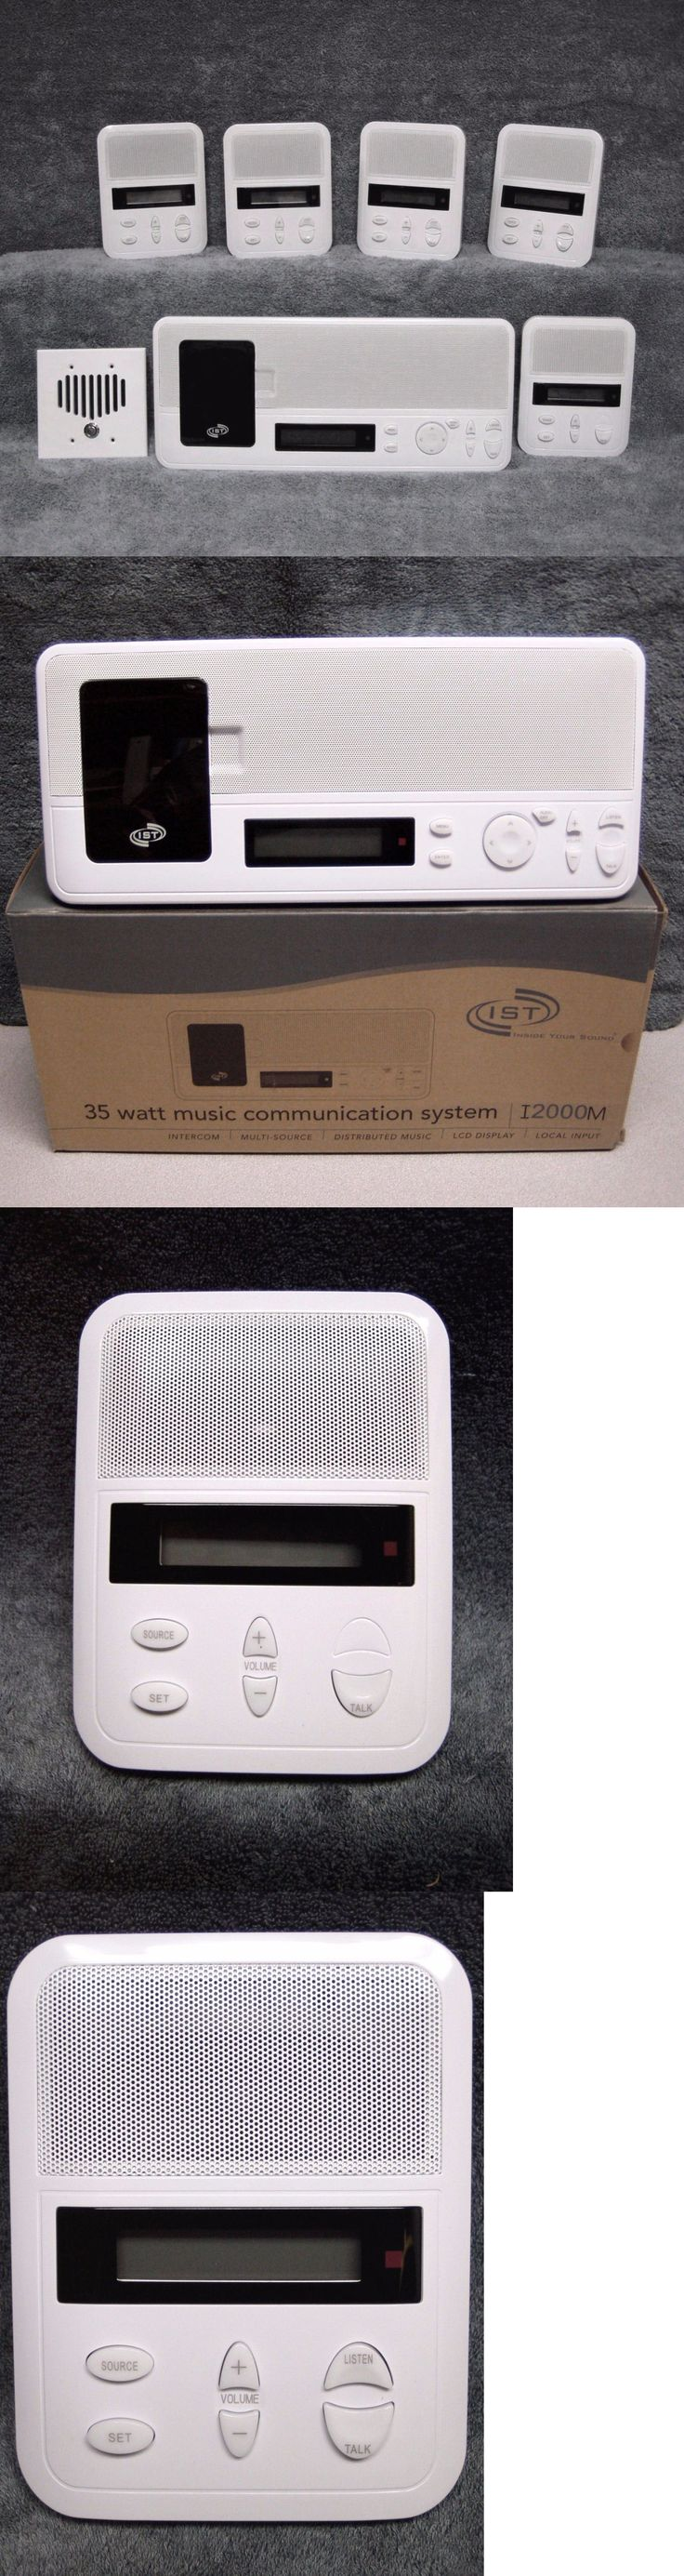 Intercoms and Access Controls: (5) Room / Patio Kit Ist Intrasonic I2000m Home Intercom System Ipod Dock - New -> BUY IT NOW ONLY: $854.0 on eBay!